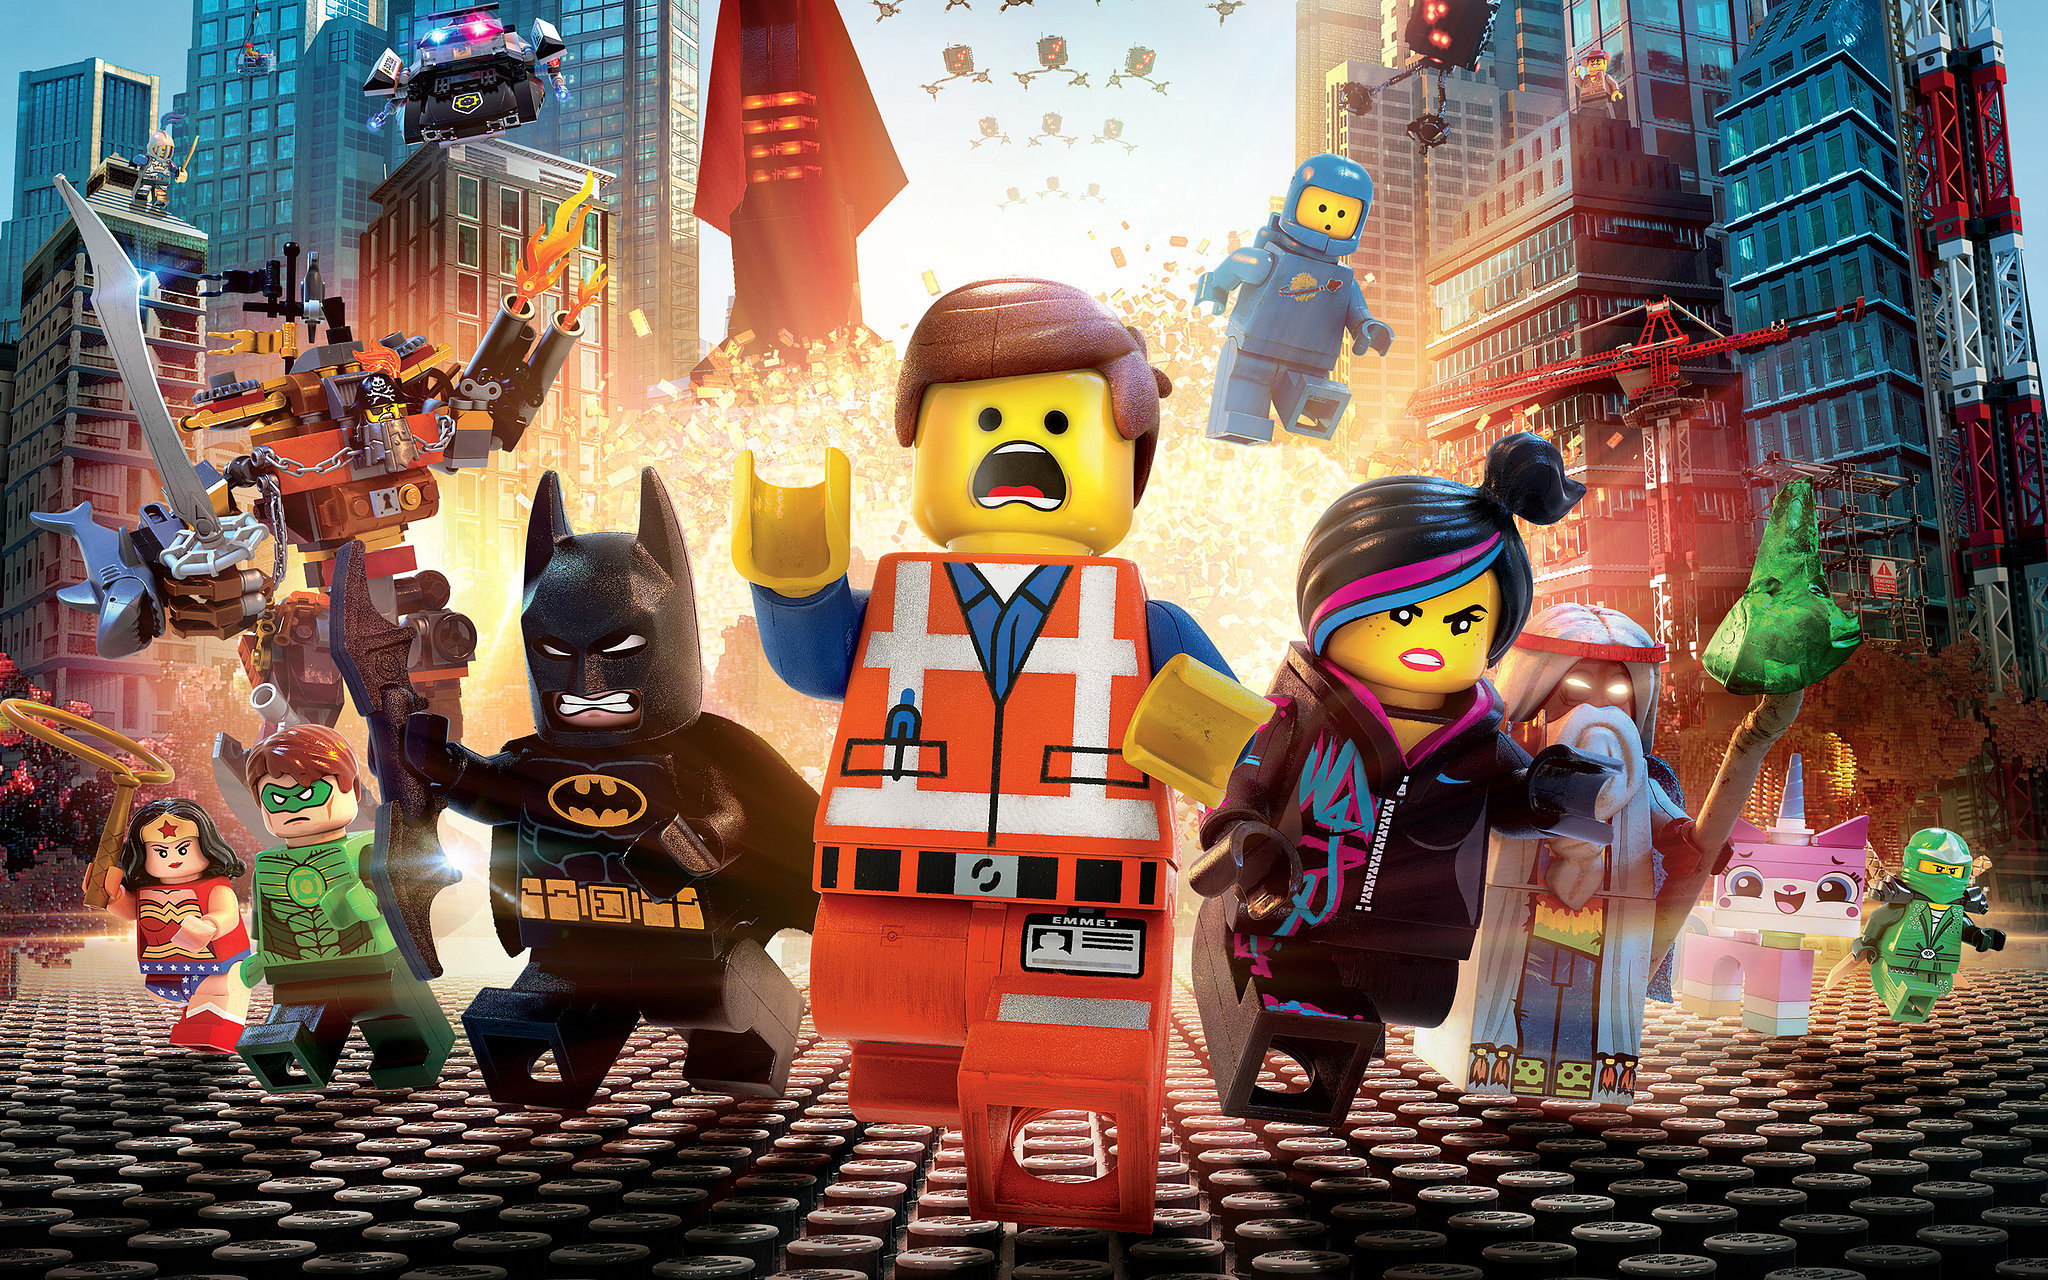 Most Awesome: The LEGO Movie